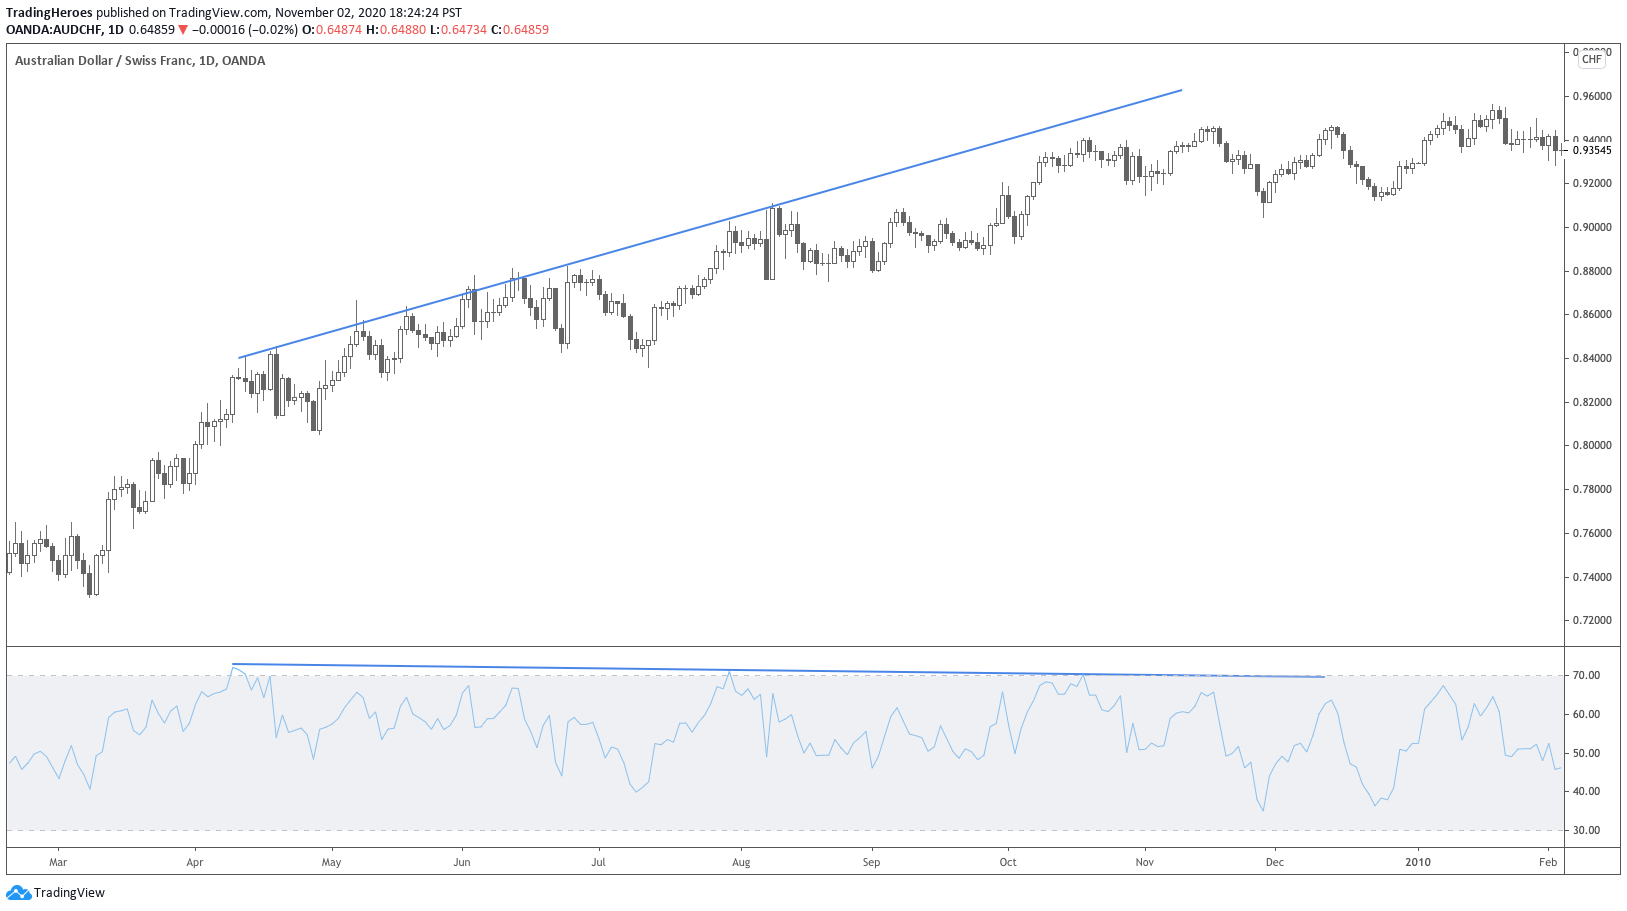 RSI divergence in a trend